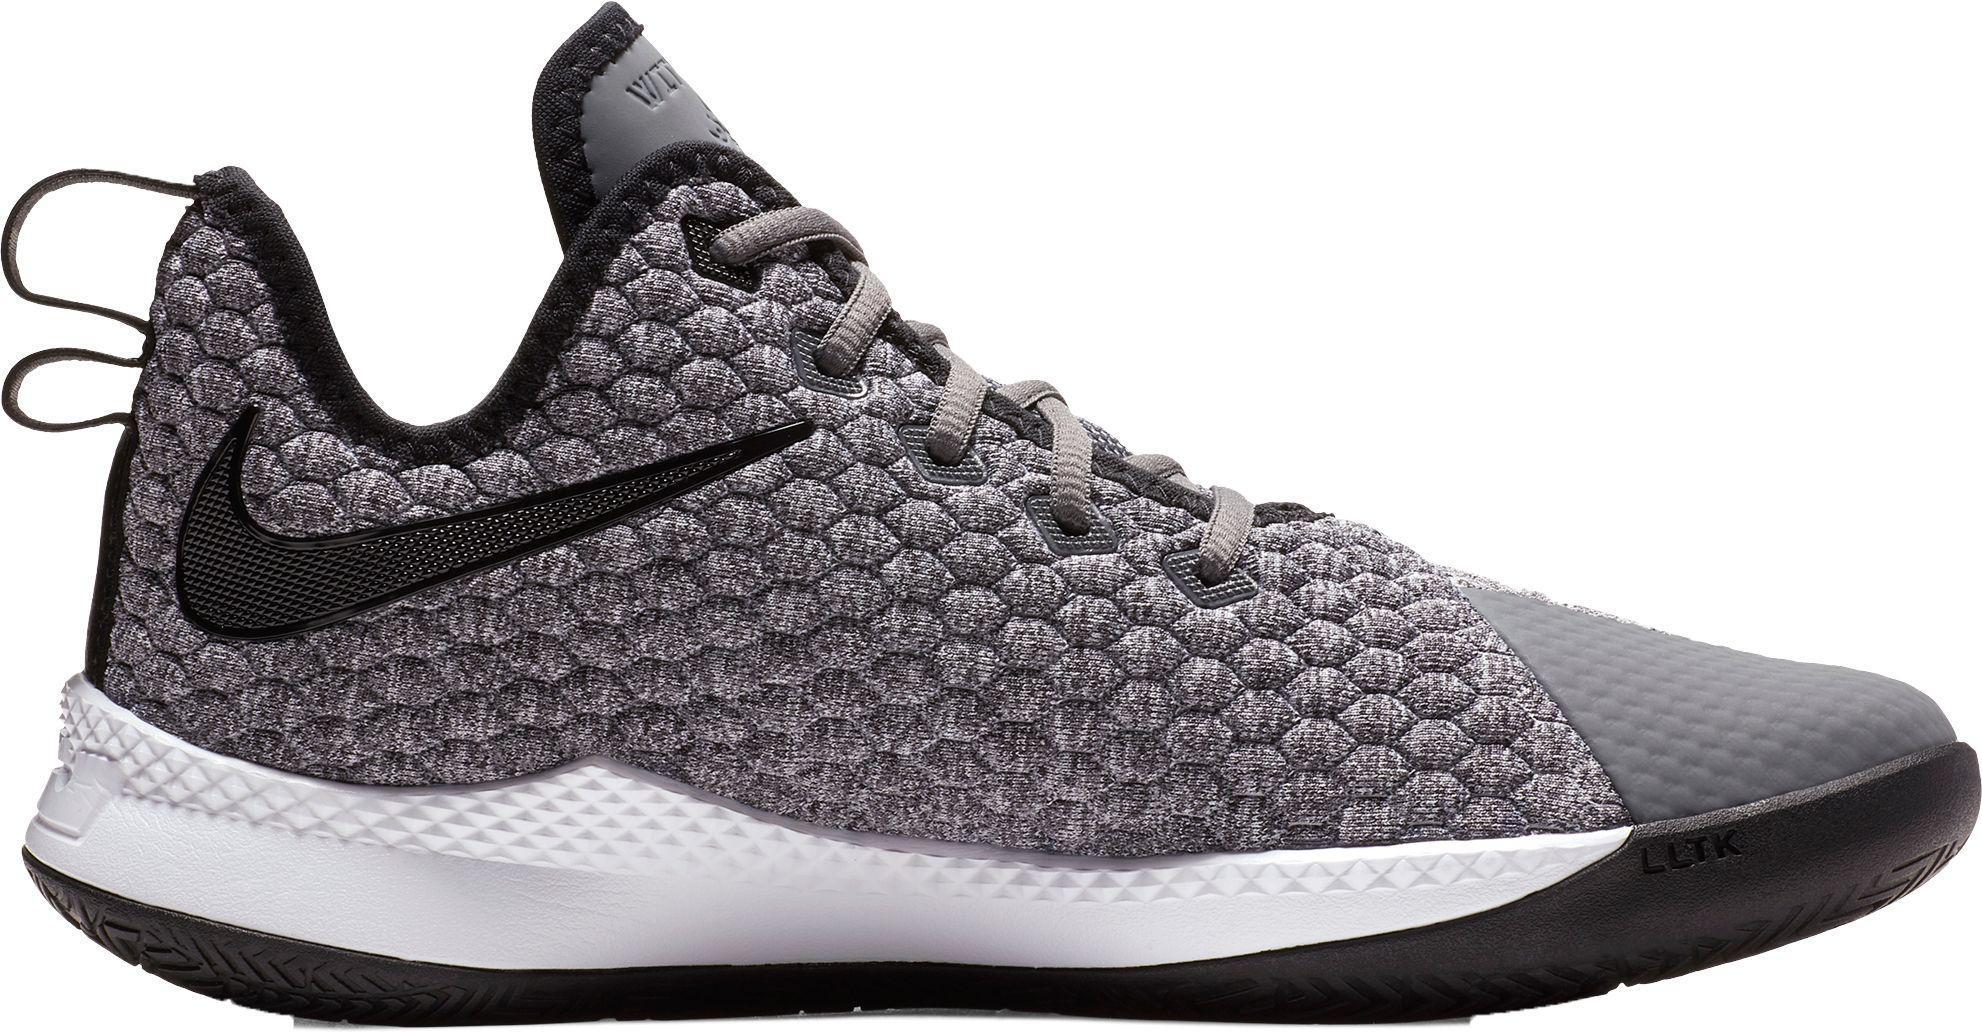 ad096b4d Nike Lebron Witness Iii Basketball Shoes in Gray for Men - Lyst